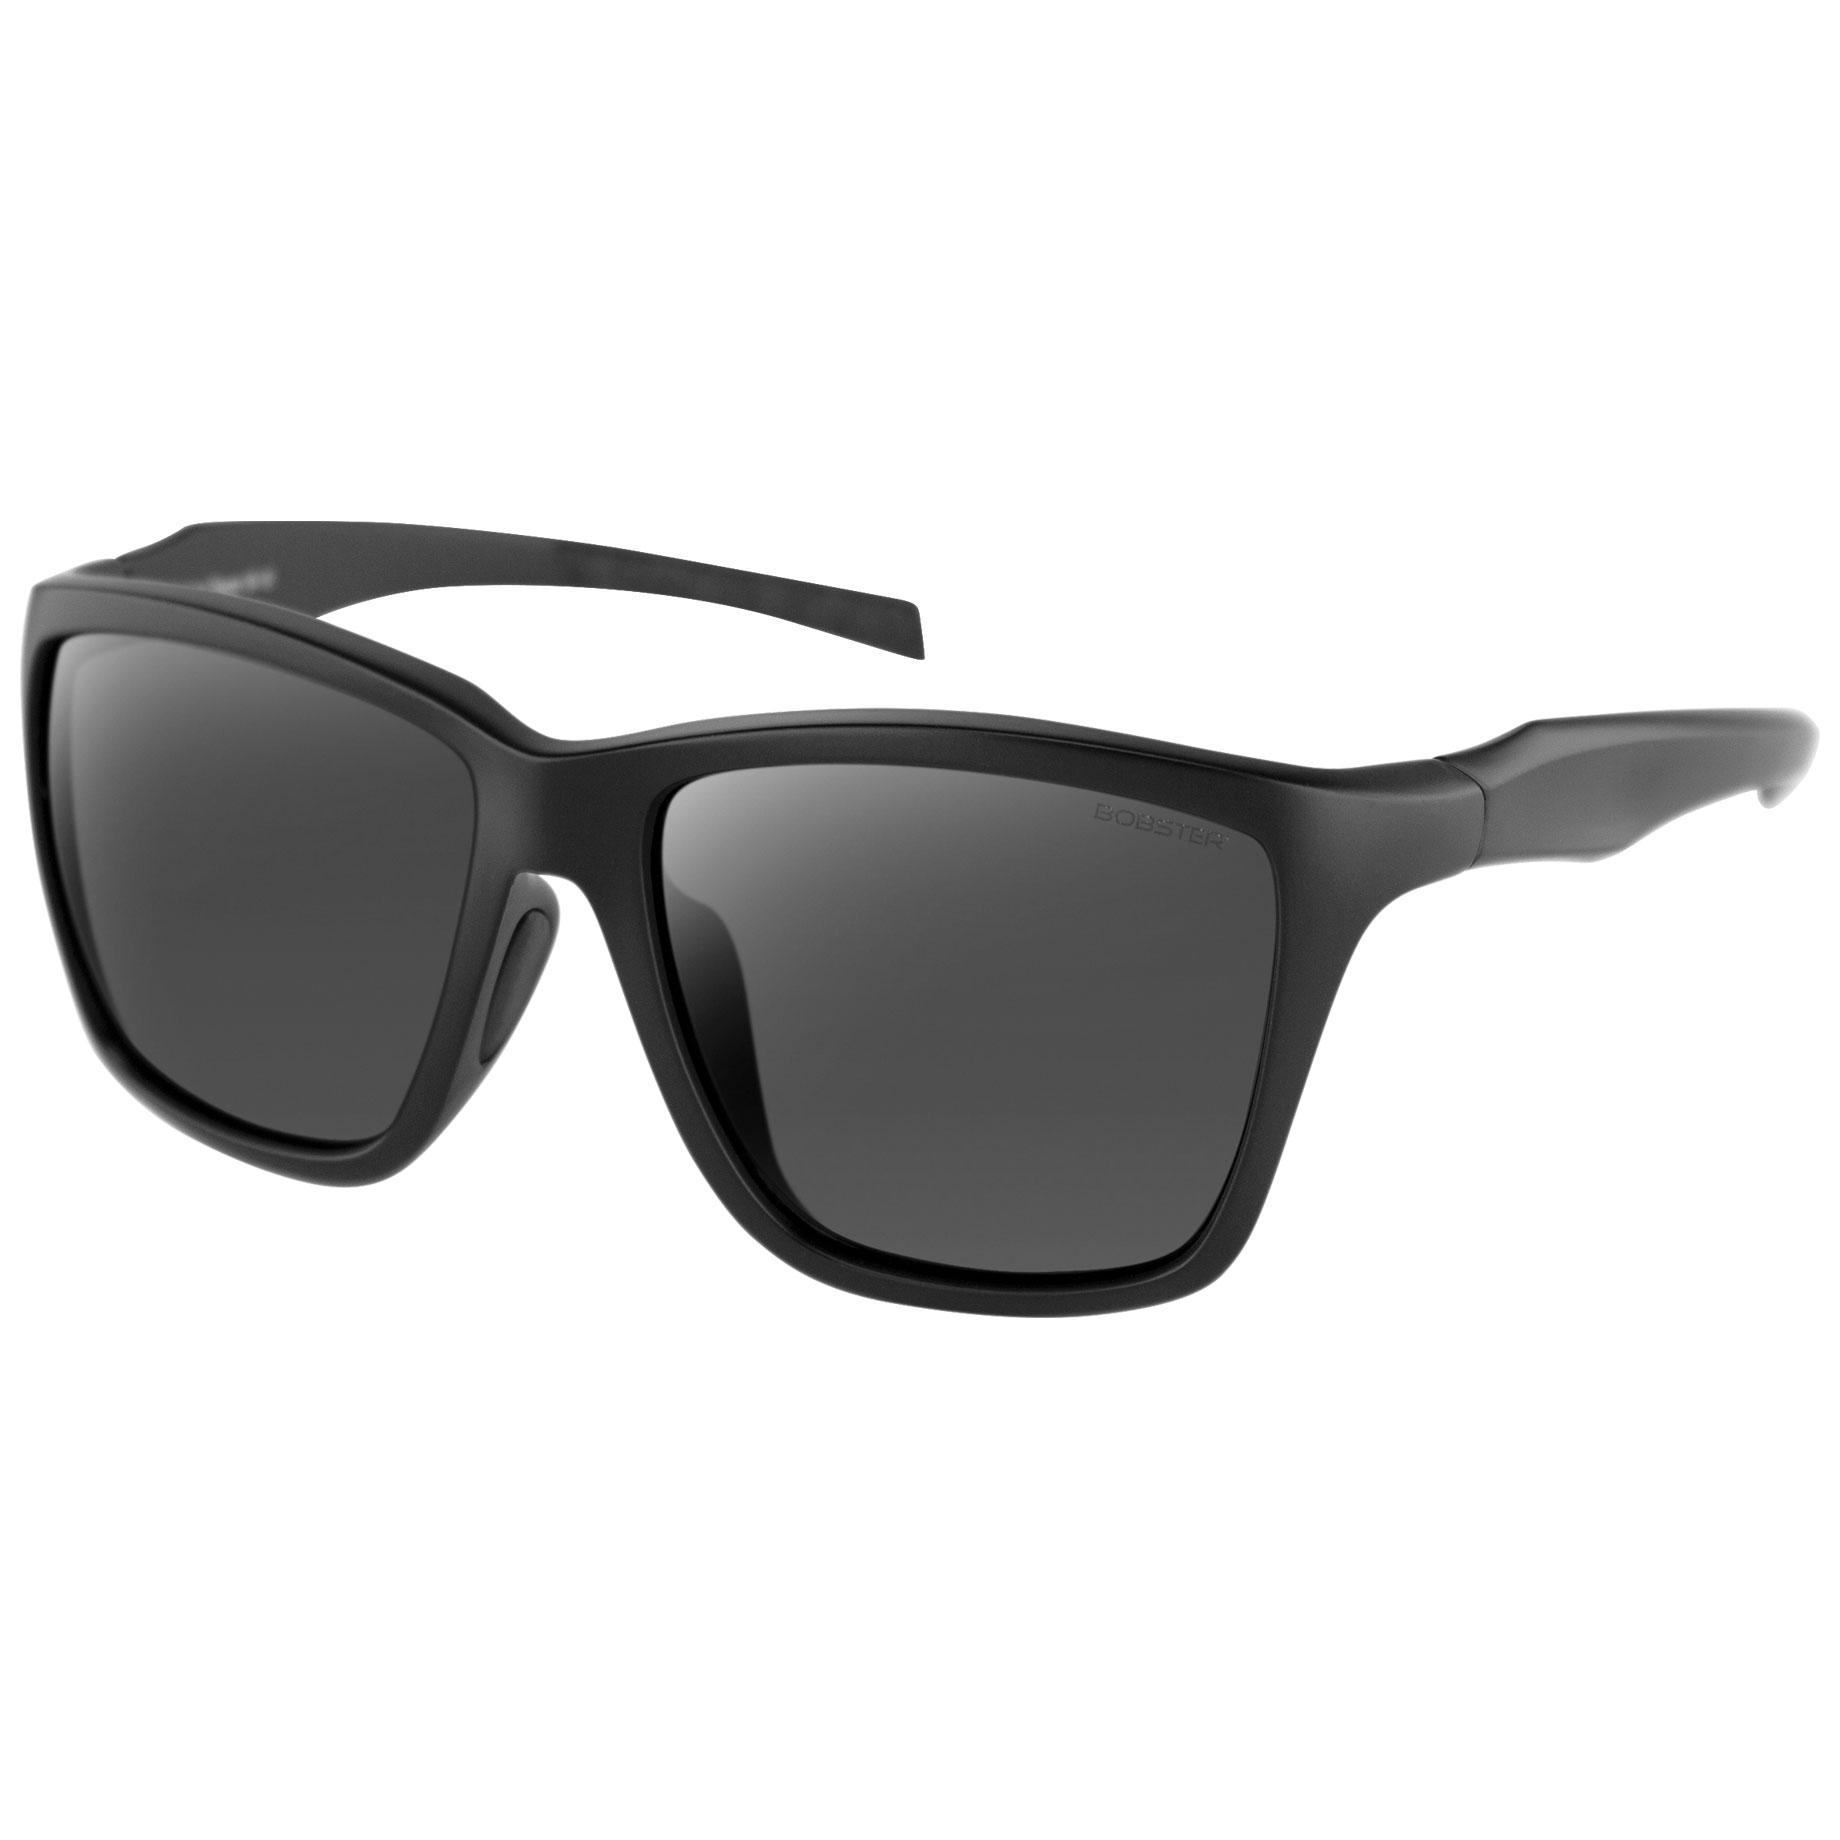 Bobster Anchor Black Sunglasses with Smoke Lens